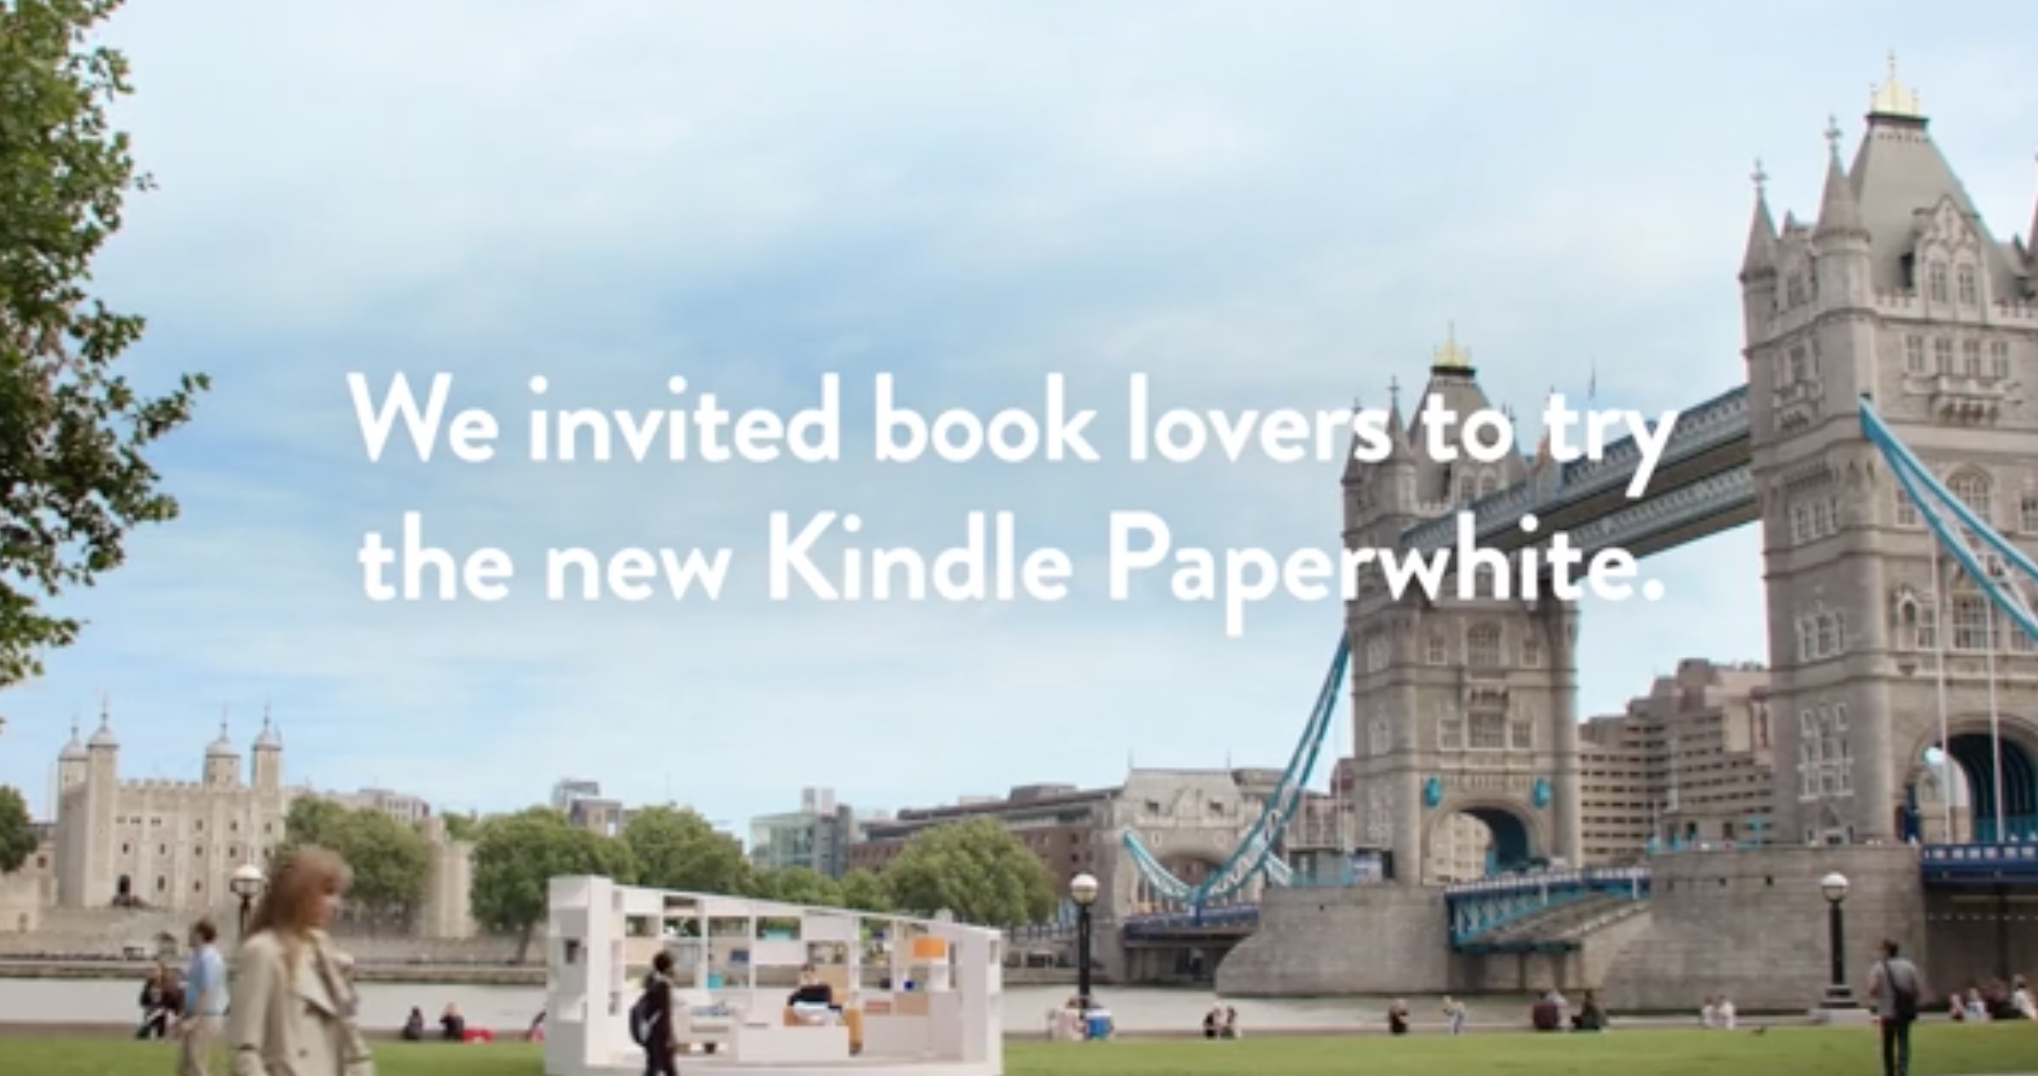 """Amazon needed to convince nay-sayers around the world to give the new Kindle Paperwhite a try. We created an international TV campaign featuring everyday people rooted in the idea """"you've got to read it to believe it."""" I'm proud to have been a driver of every aspect of this successful campaign — from concepting to filming in New York, London and Berlin. Click to watch."""